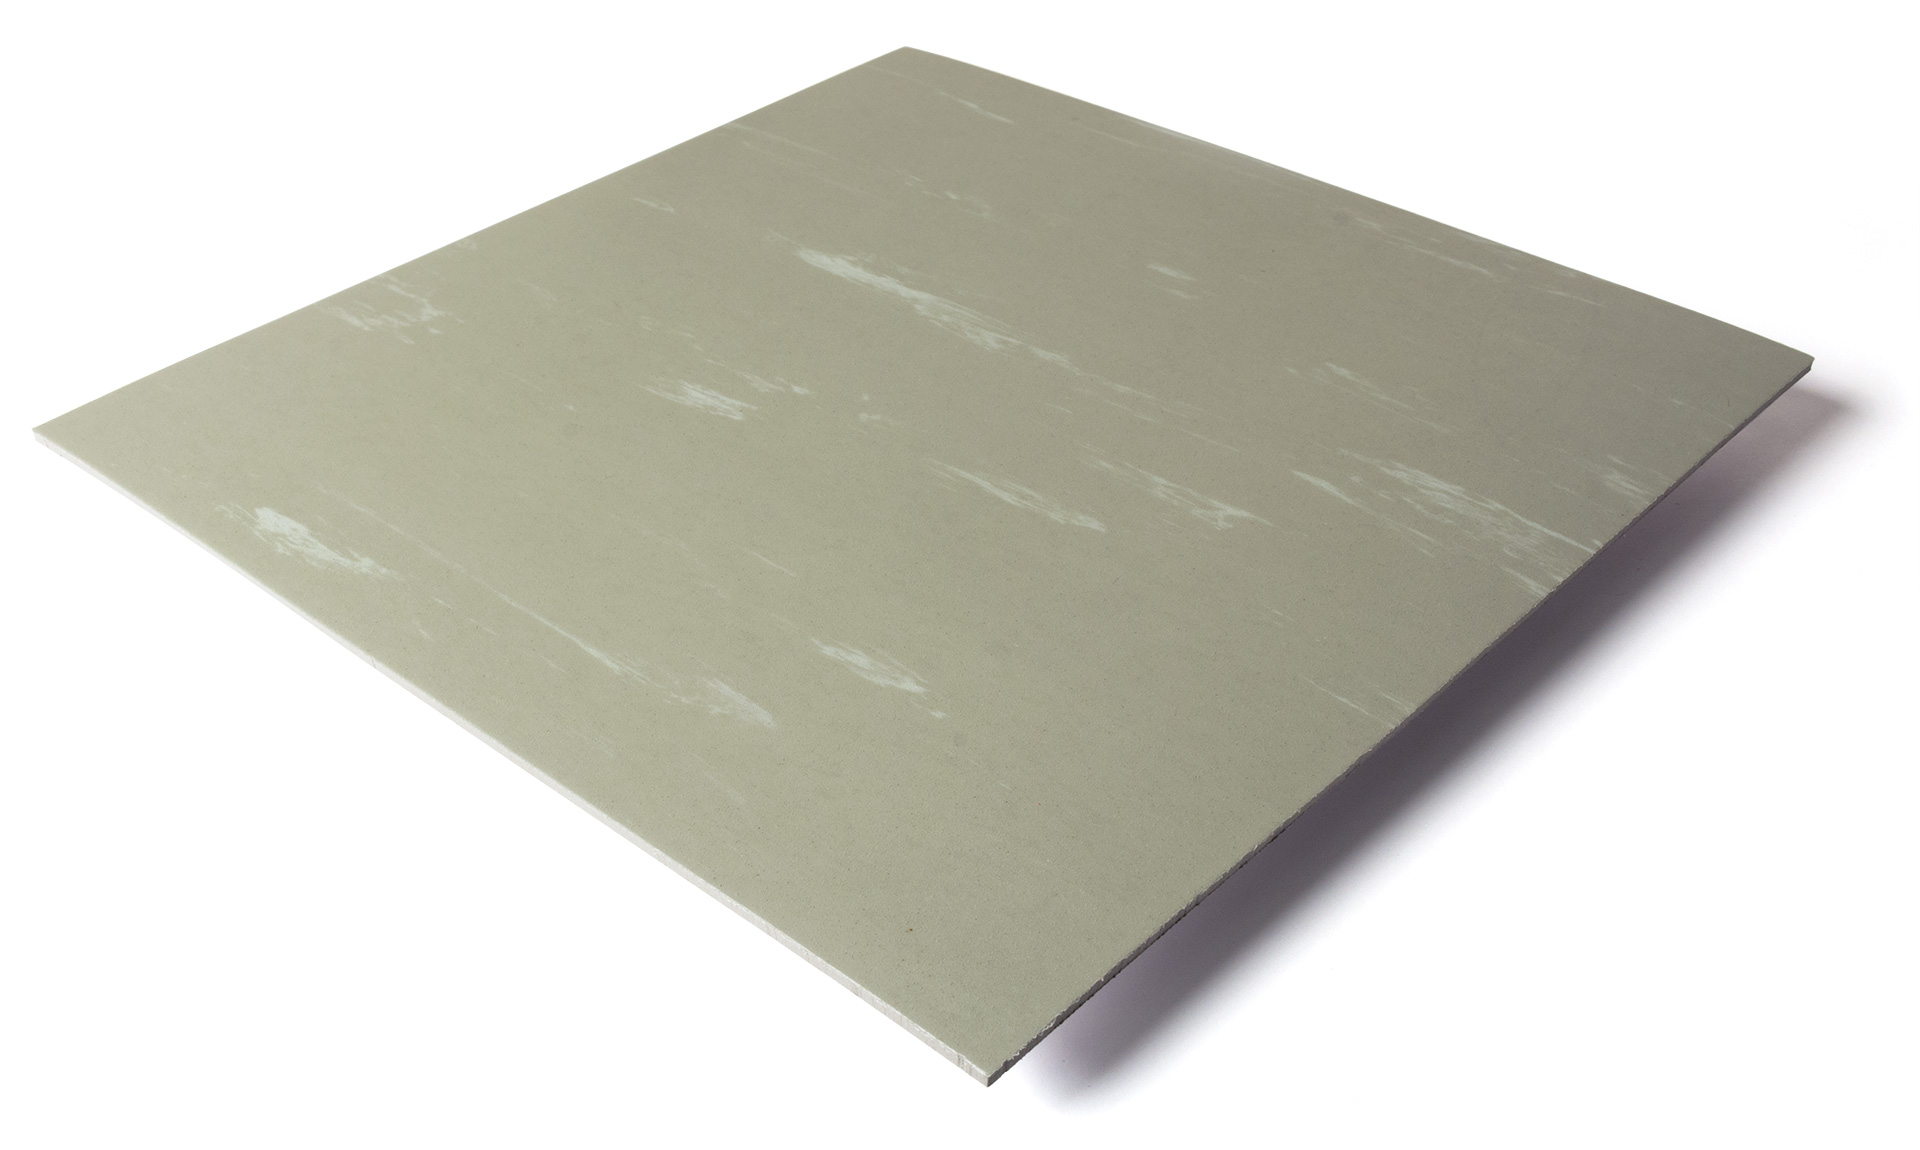 Standard transit flooring in marbled light gray, smooth